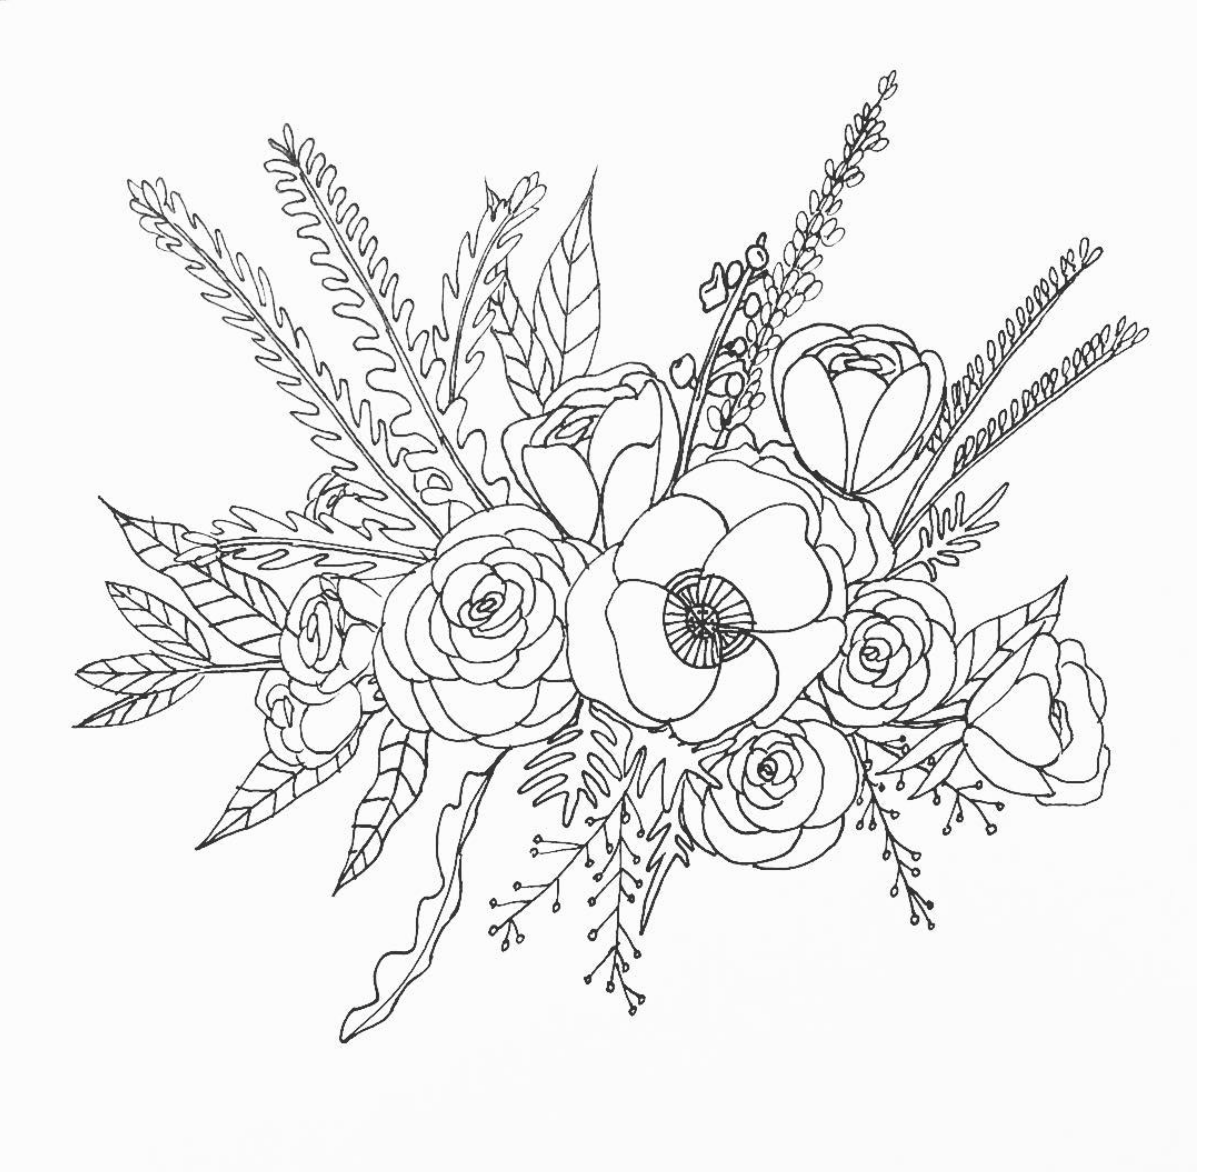 Flower Line Drawing Tumblr : Line drawing flower illustration floral bouquet art